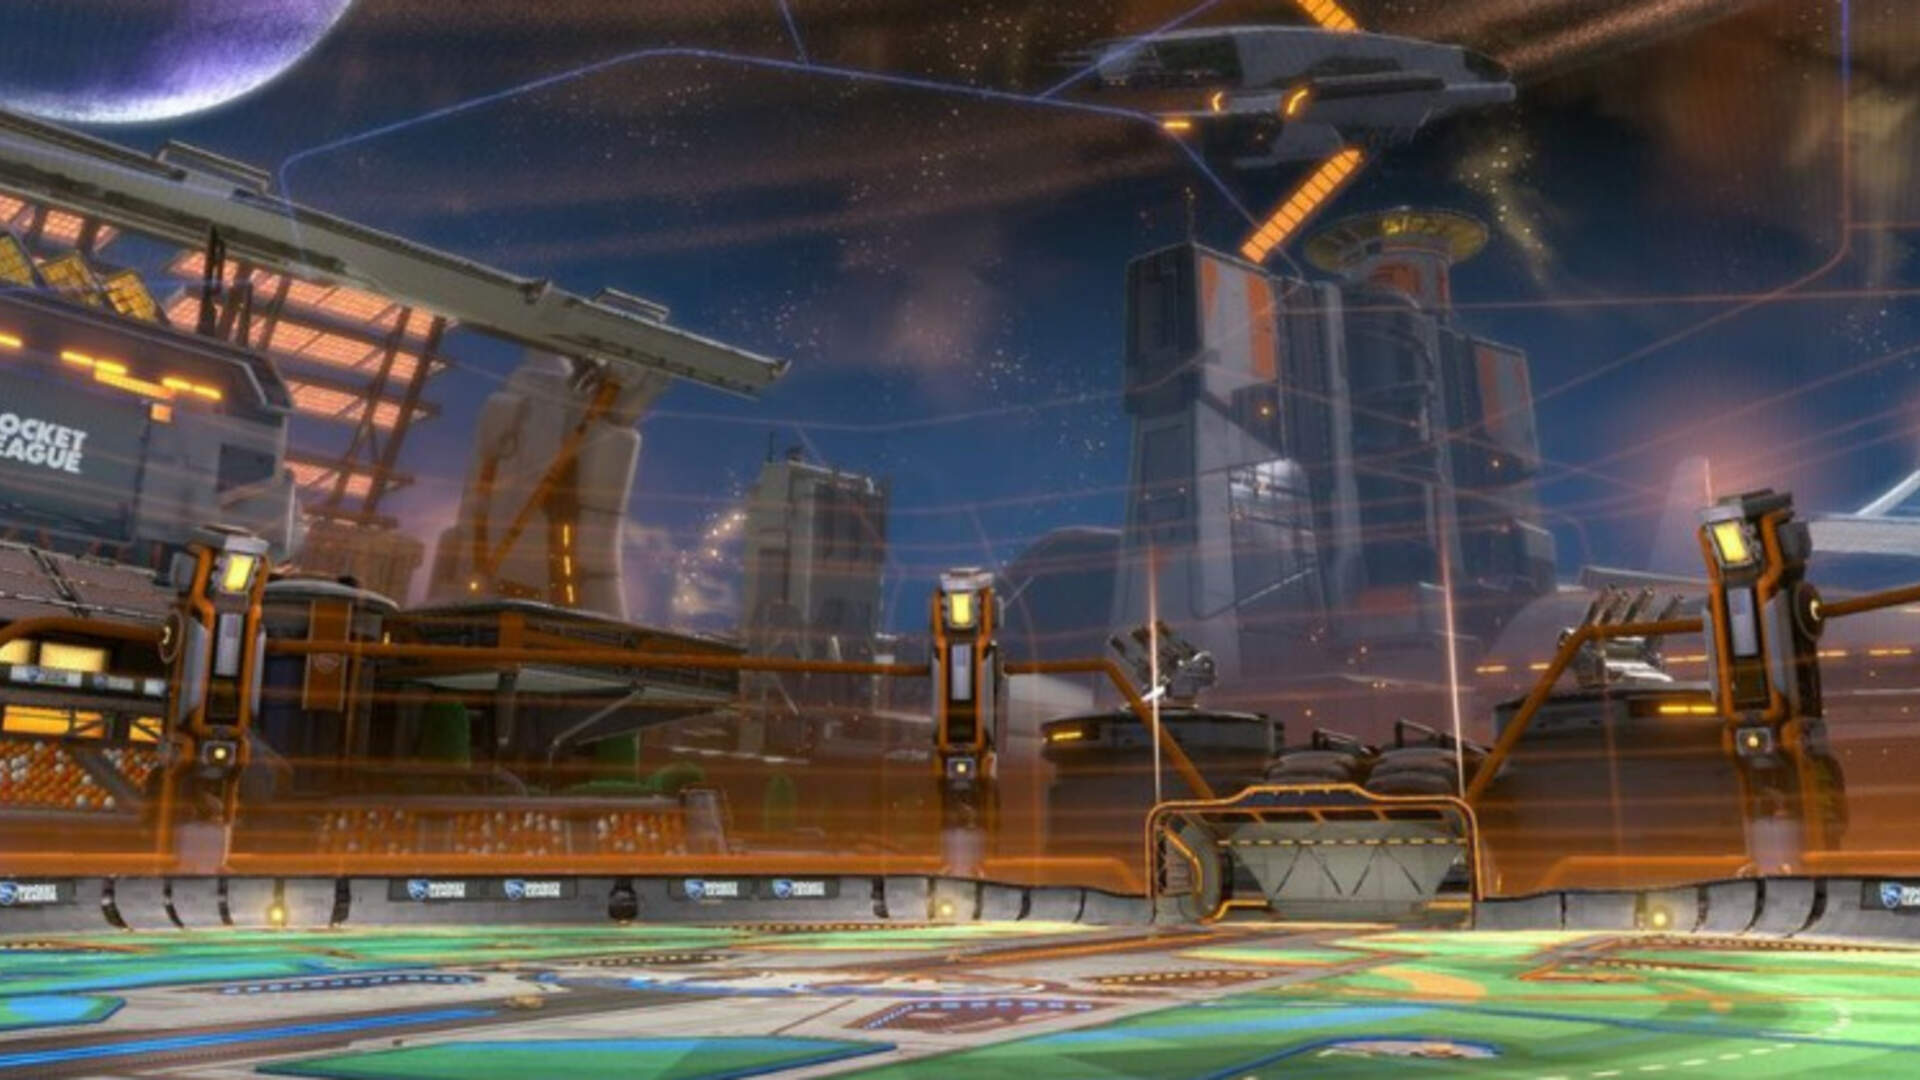 Rocket League's Next Stage is Starbase ARC